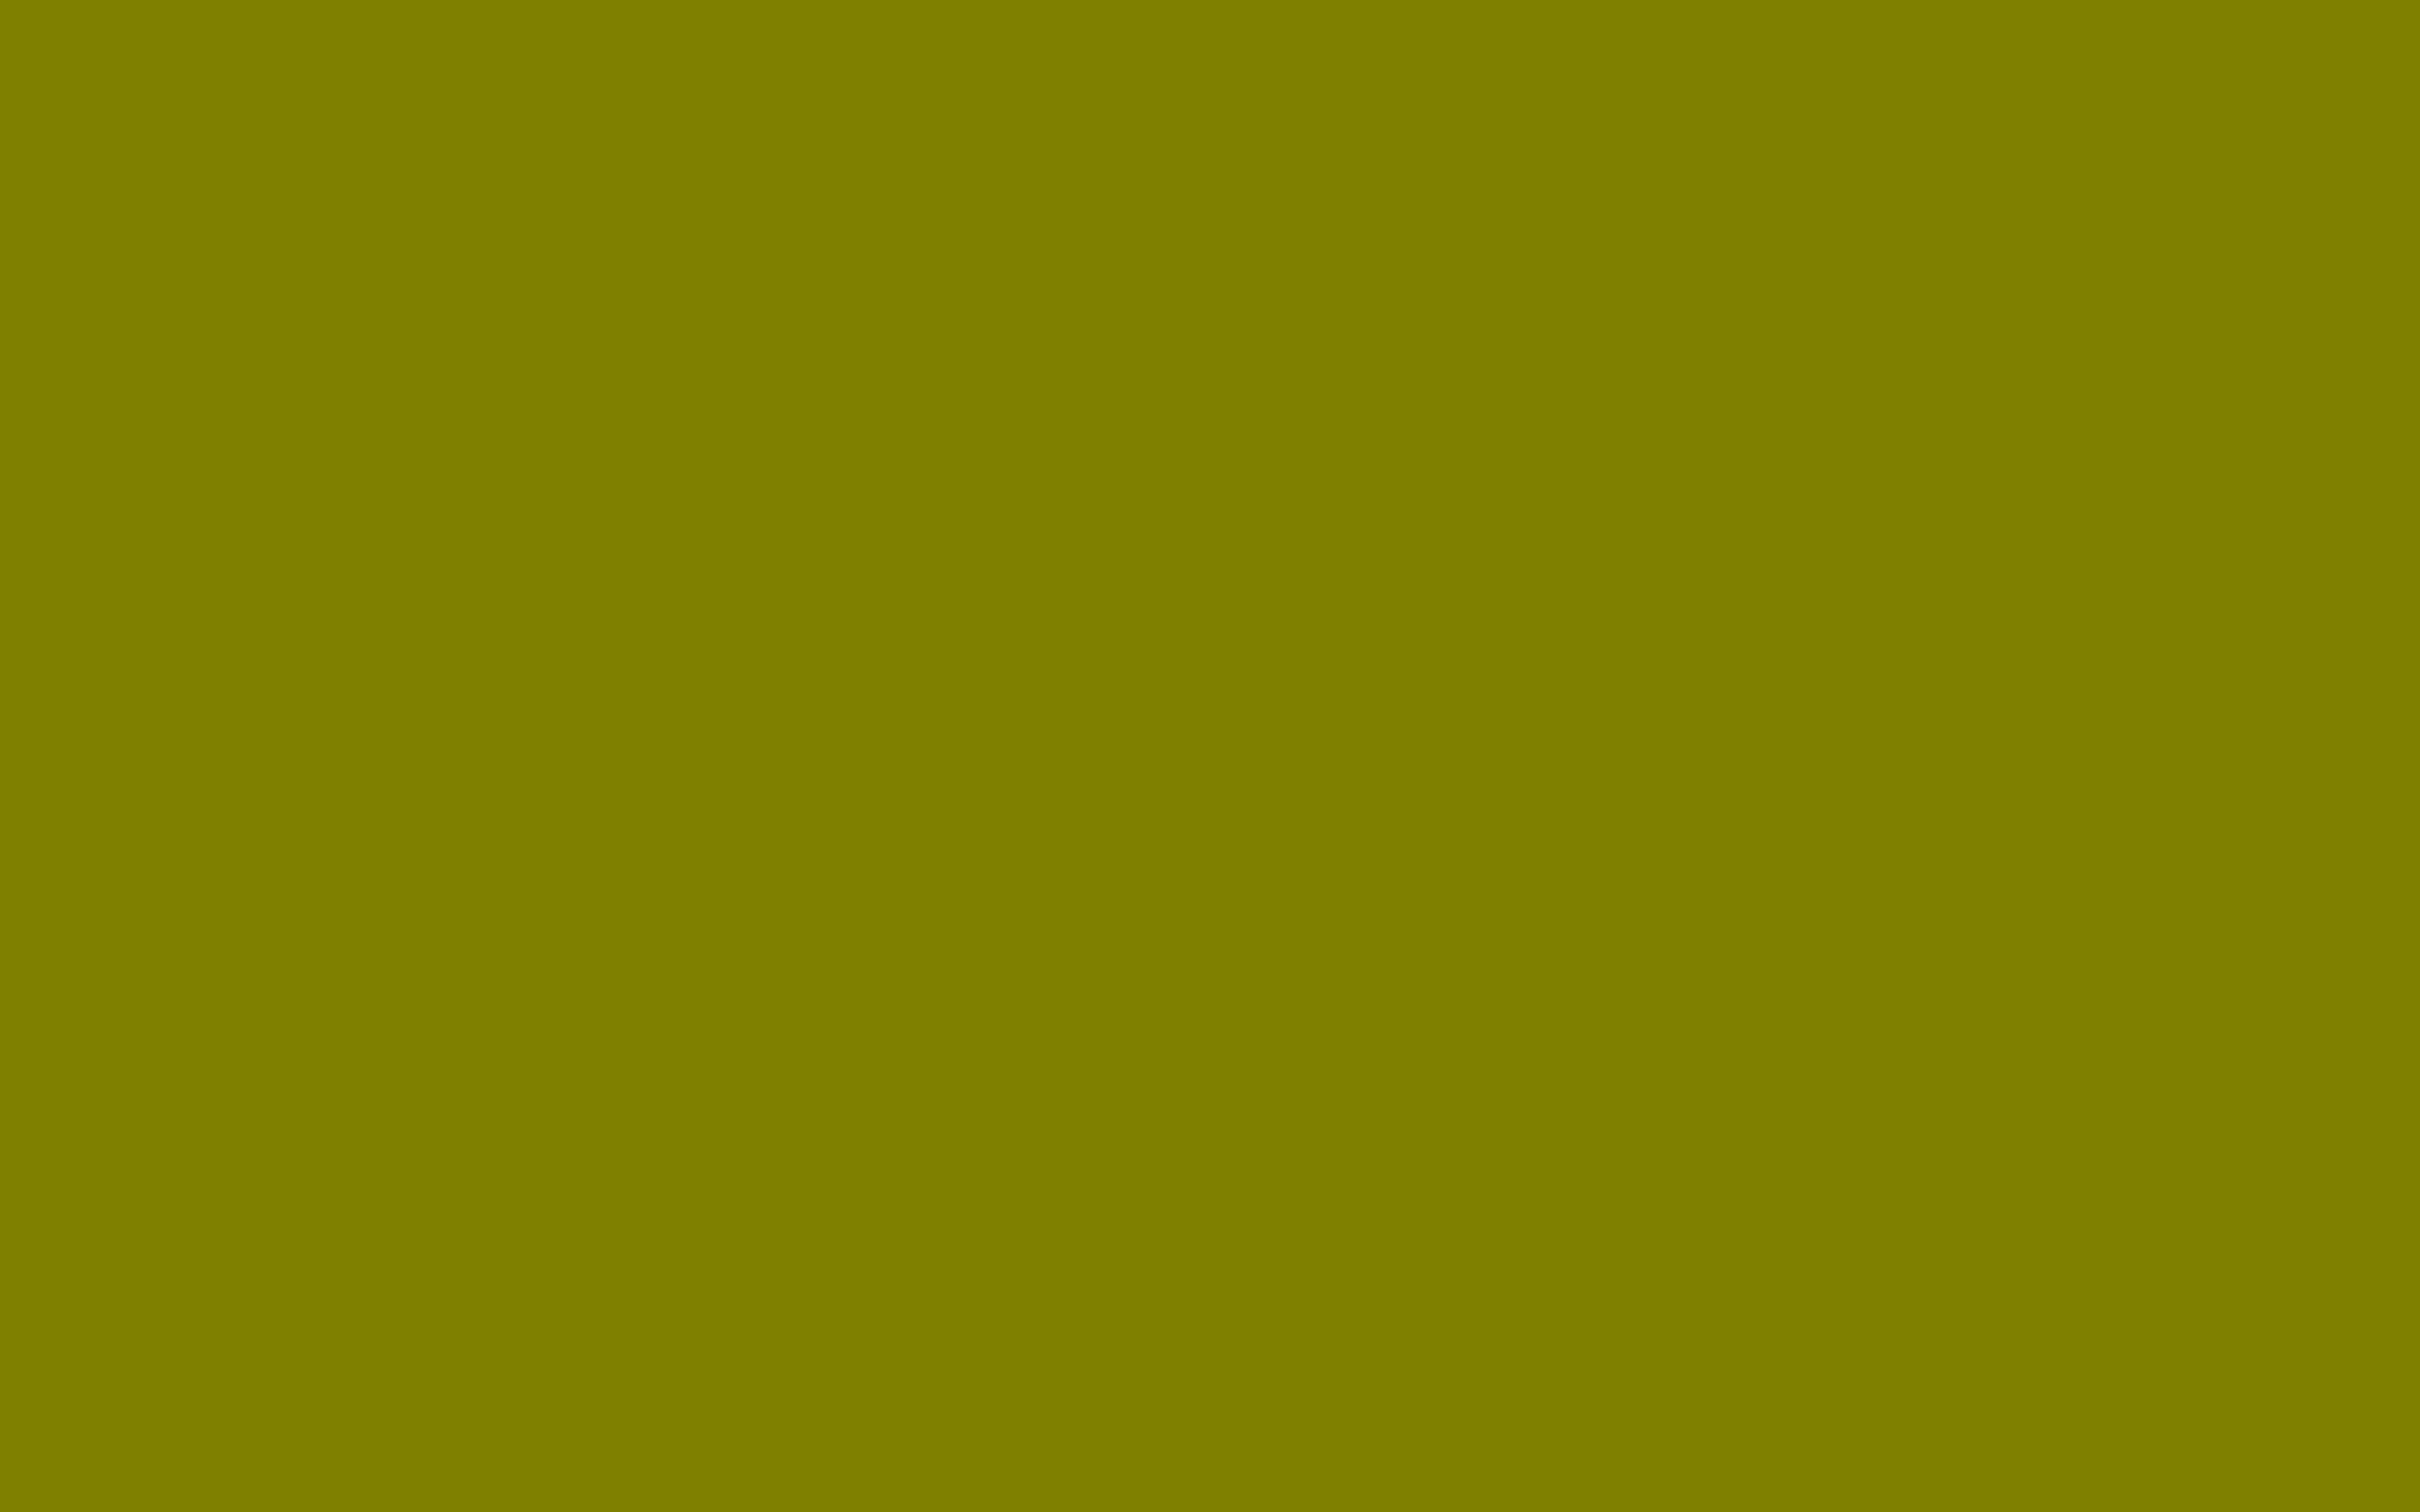 2560x1600 Olive Solid Color Background